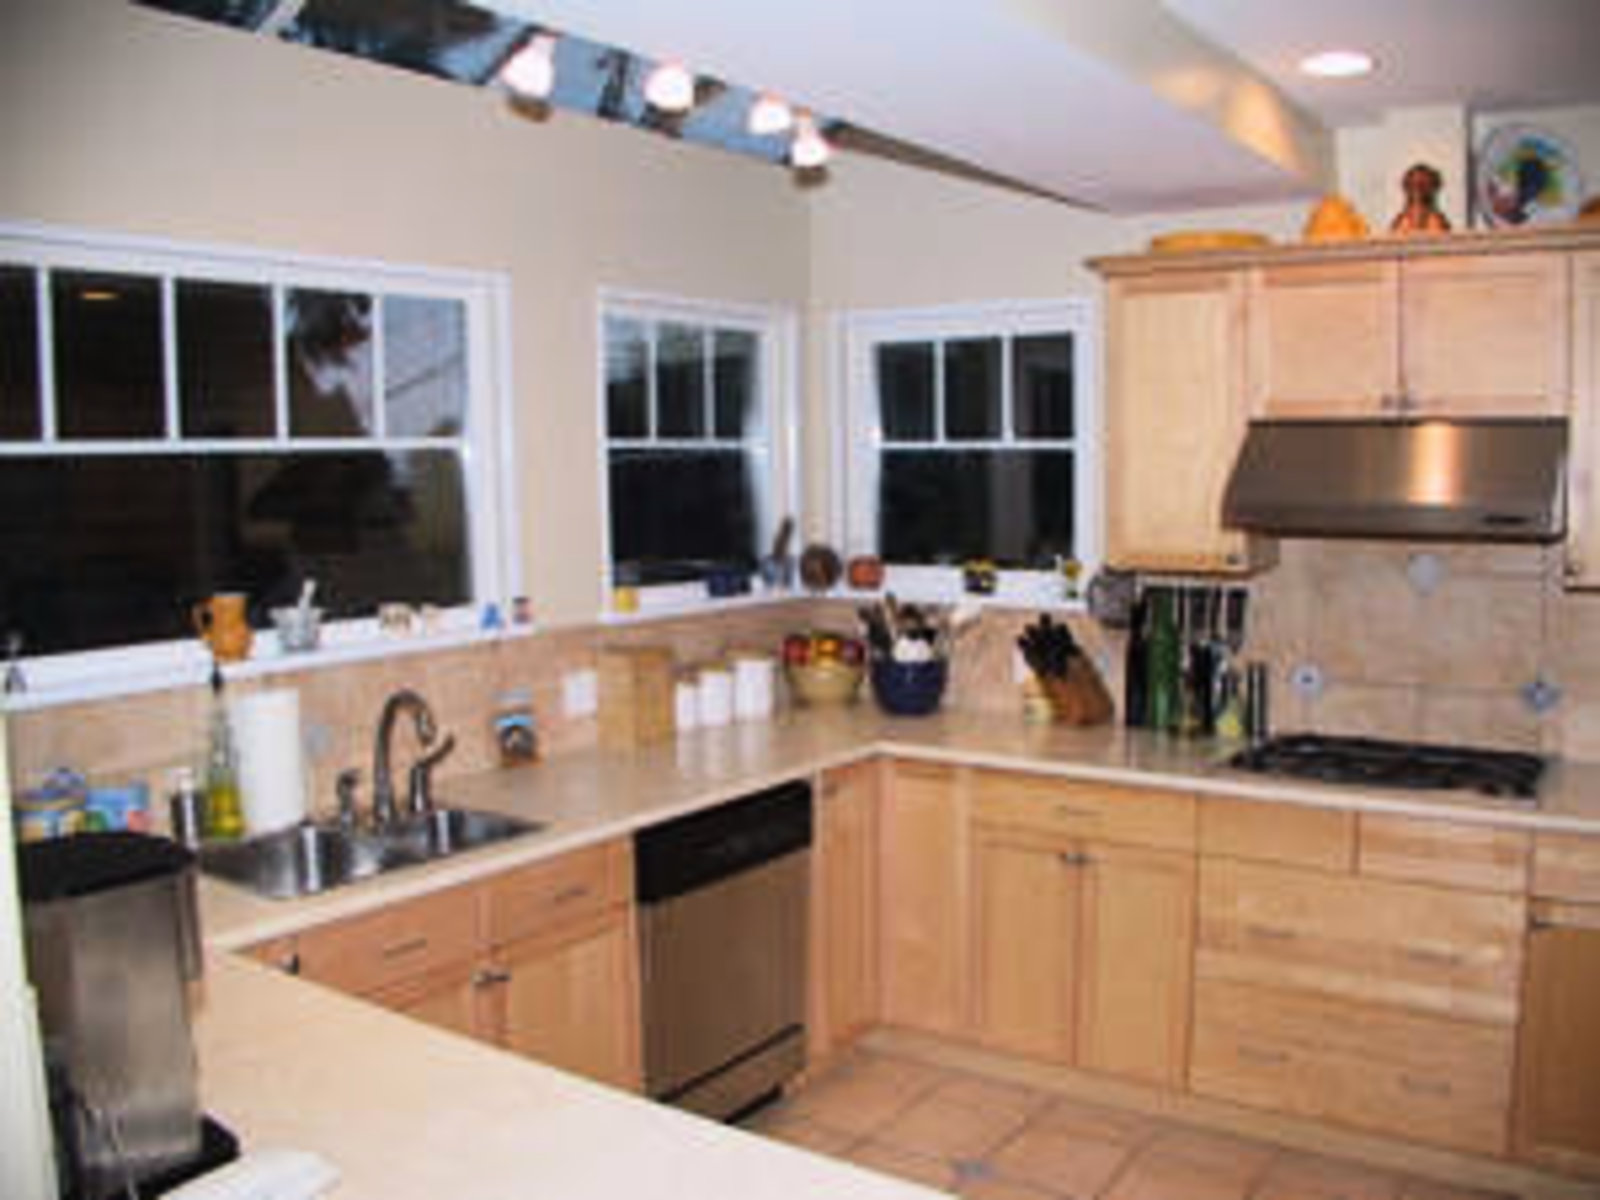 Kitchen Stainless steel appliances, skylights